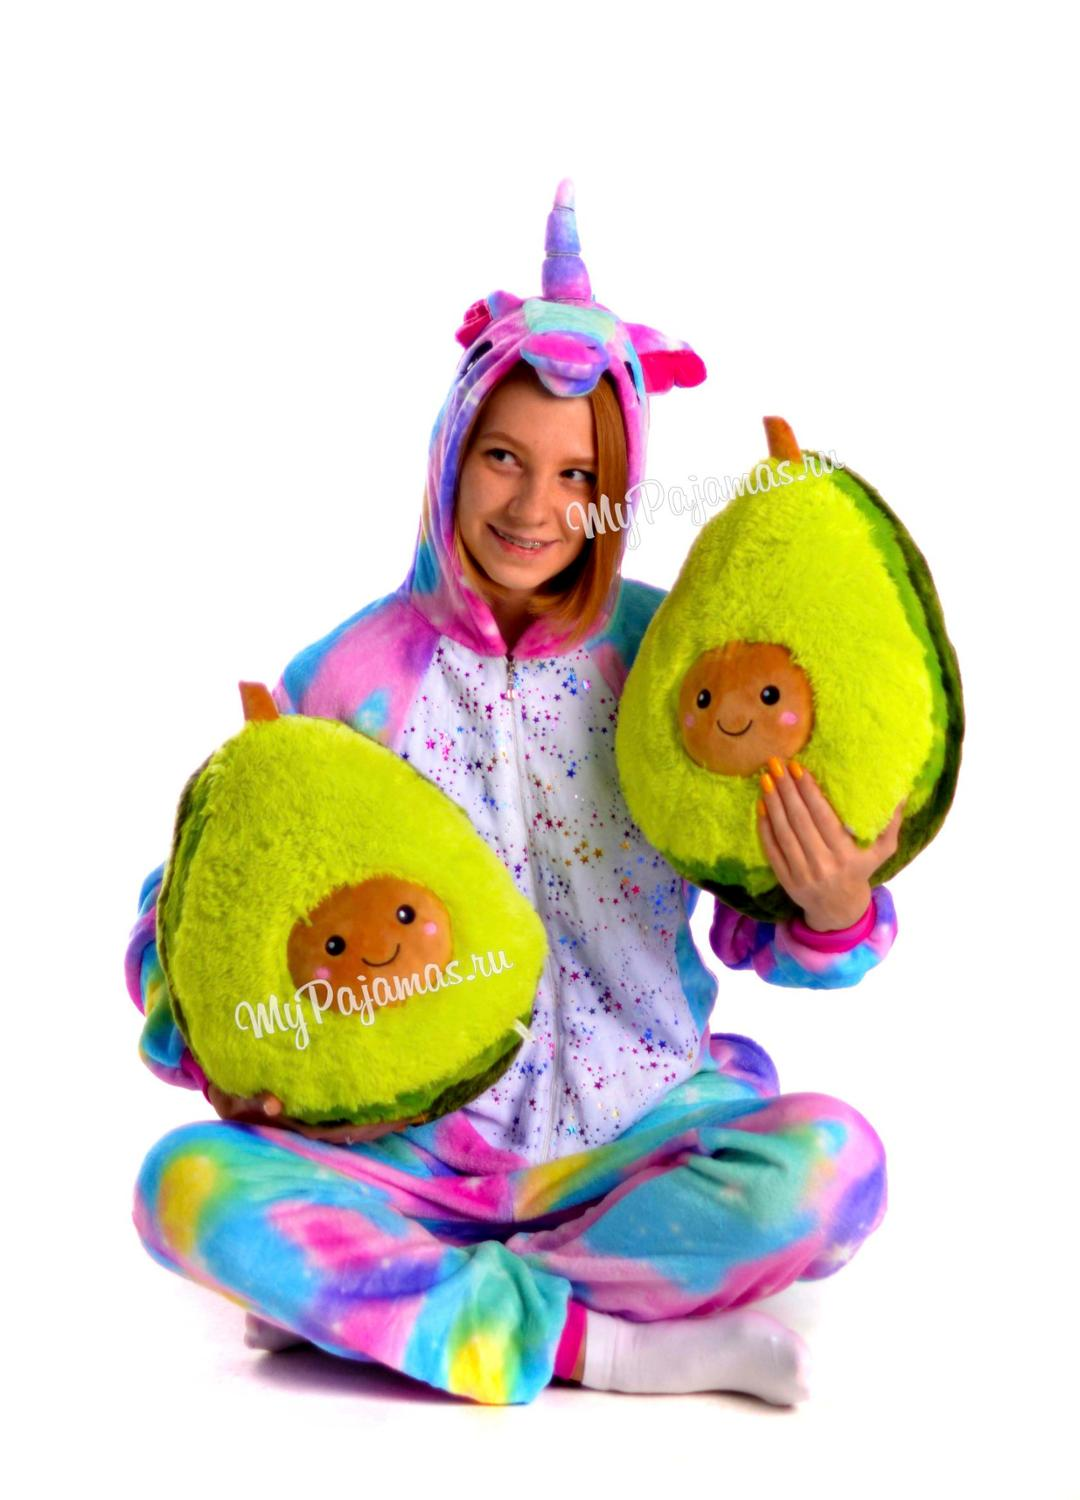 Plush Stuffed Toys Avocado, Size-20, 30 And 40 Centimeters.